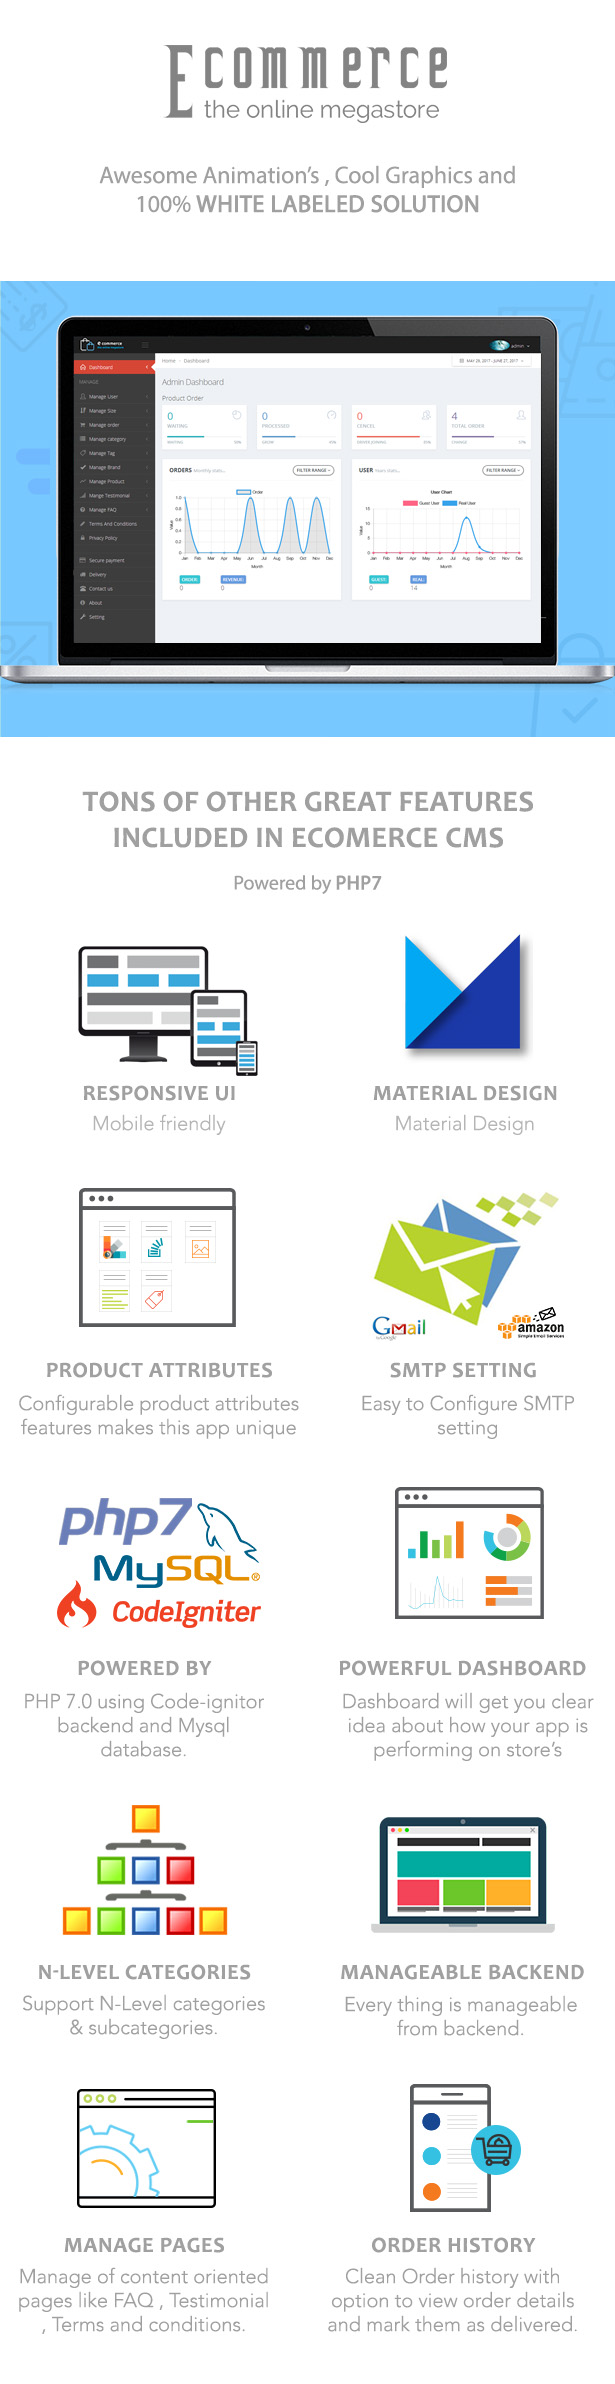 E-Commerce Android Native App with Powerful Cloud Backend - 7